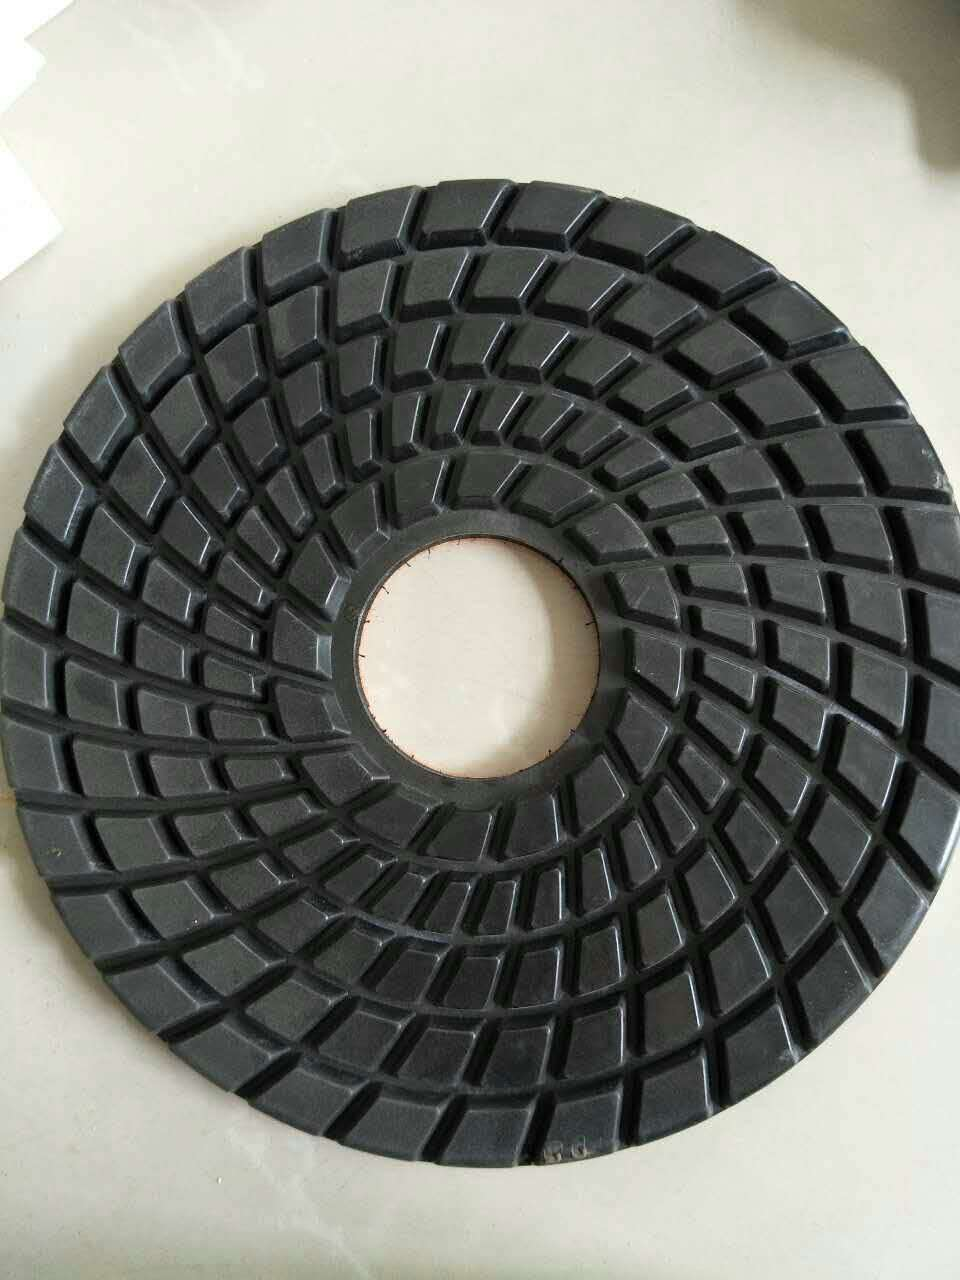 400mm wet Diamond Polishing Pad for concrete cement 10mm thickness 1pc white or green polishing paste wax polishing compounds for high lustre finishing on steels hard metals durale quality